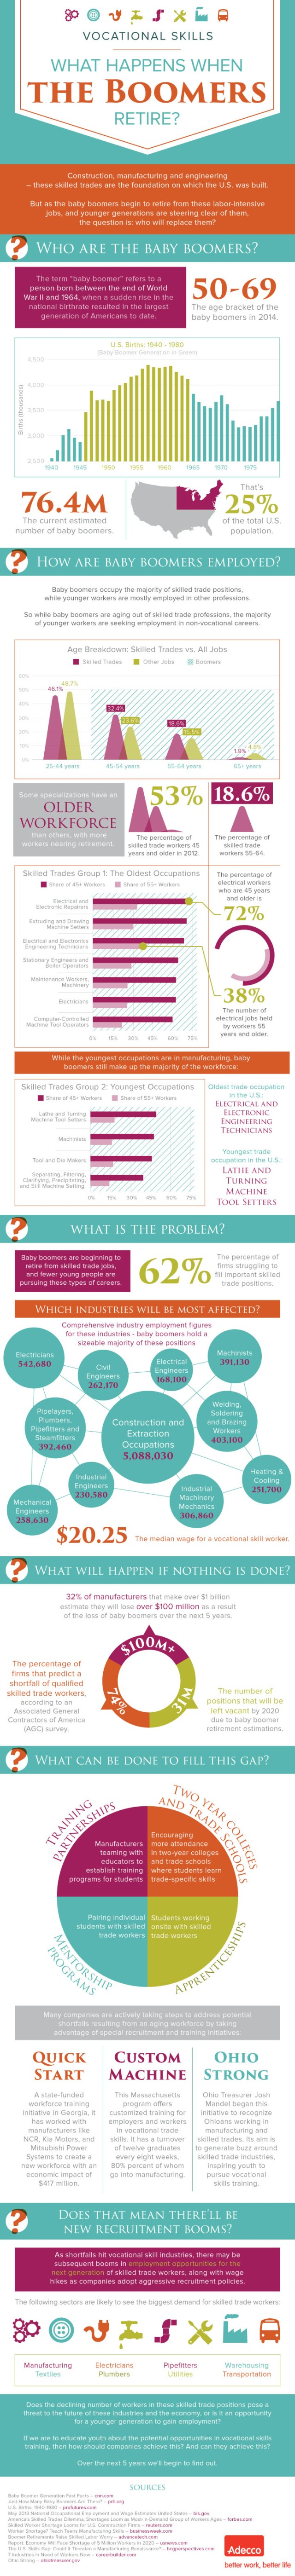 infographic-when-baby-boomers-retire-150